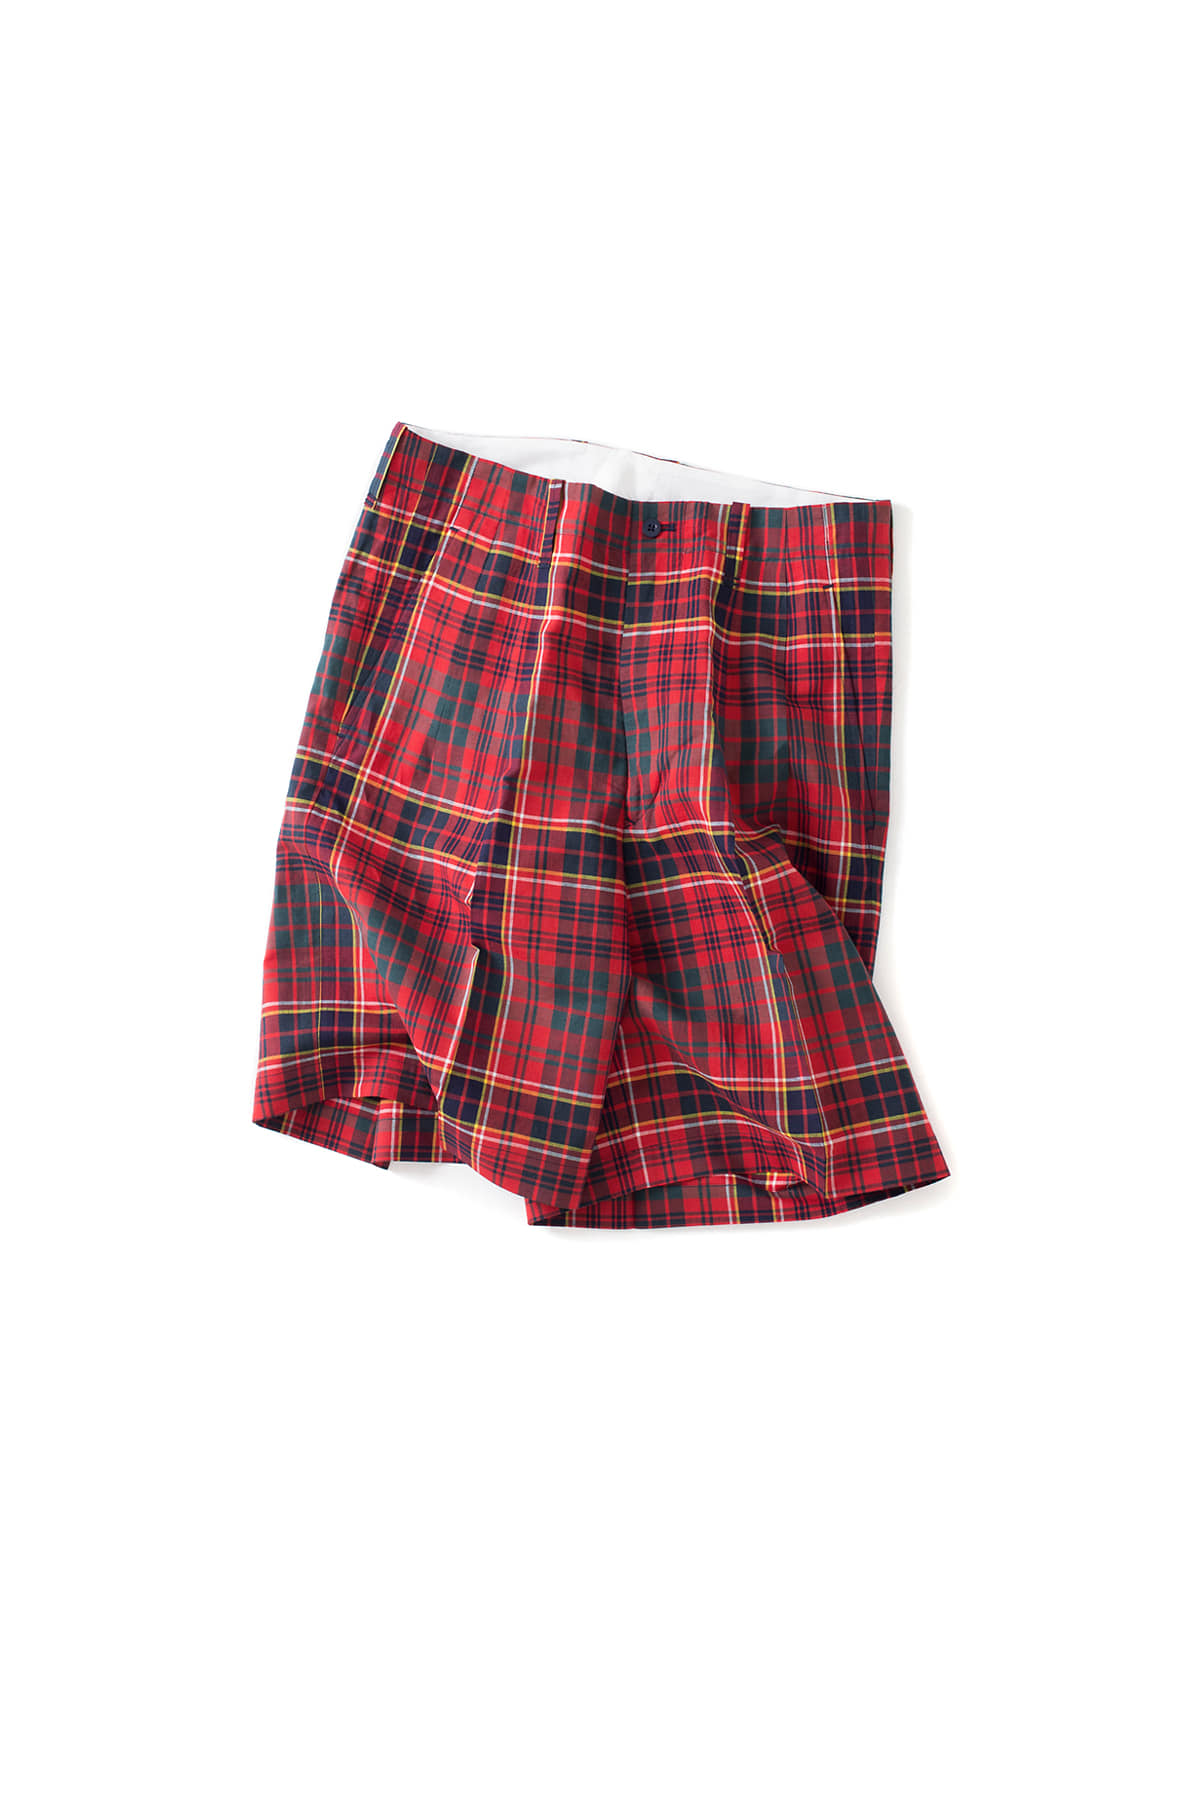 Scye : Cotton And Linen Plaid Shorts (Red)